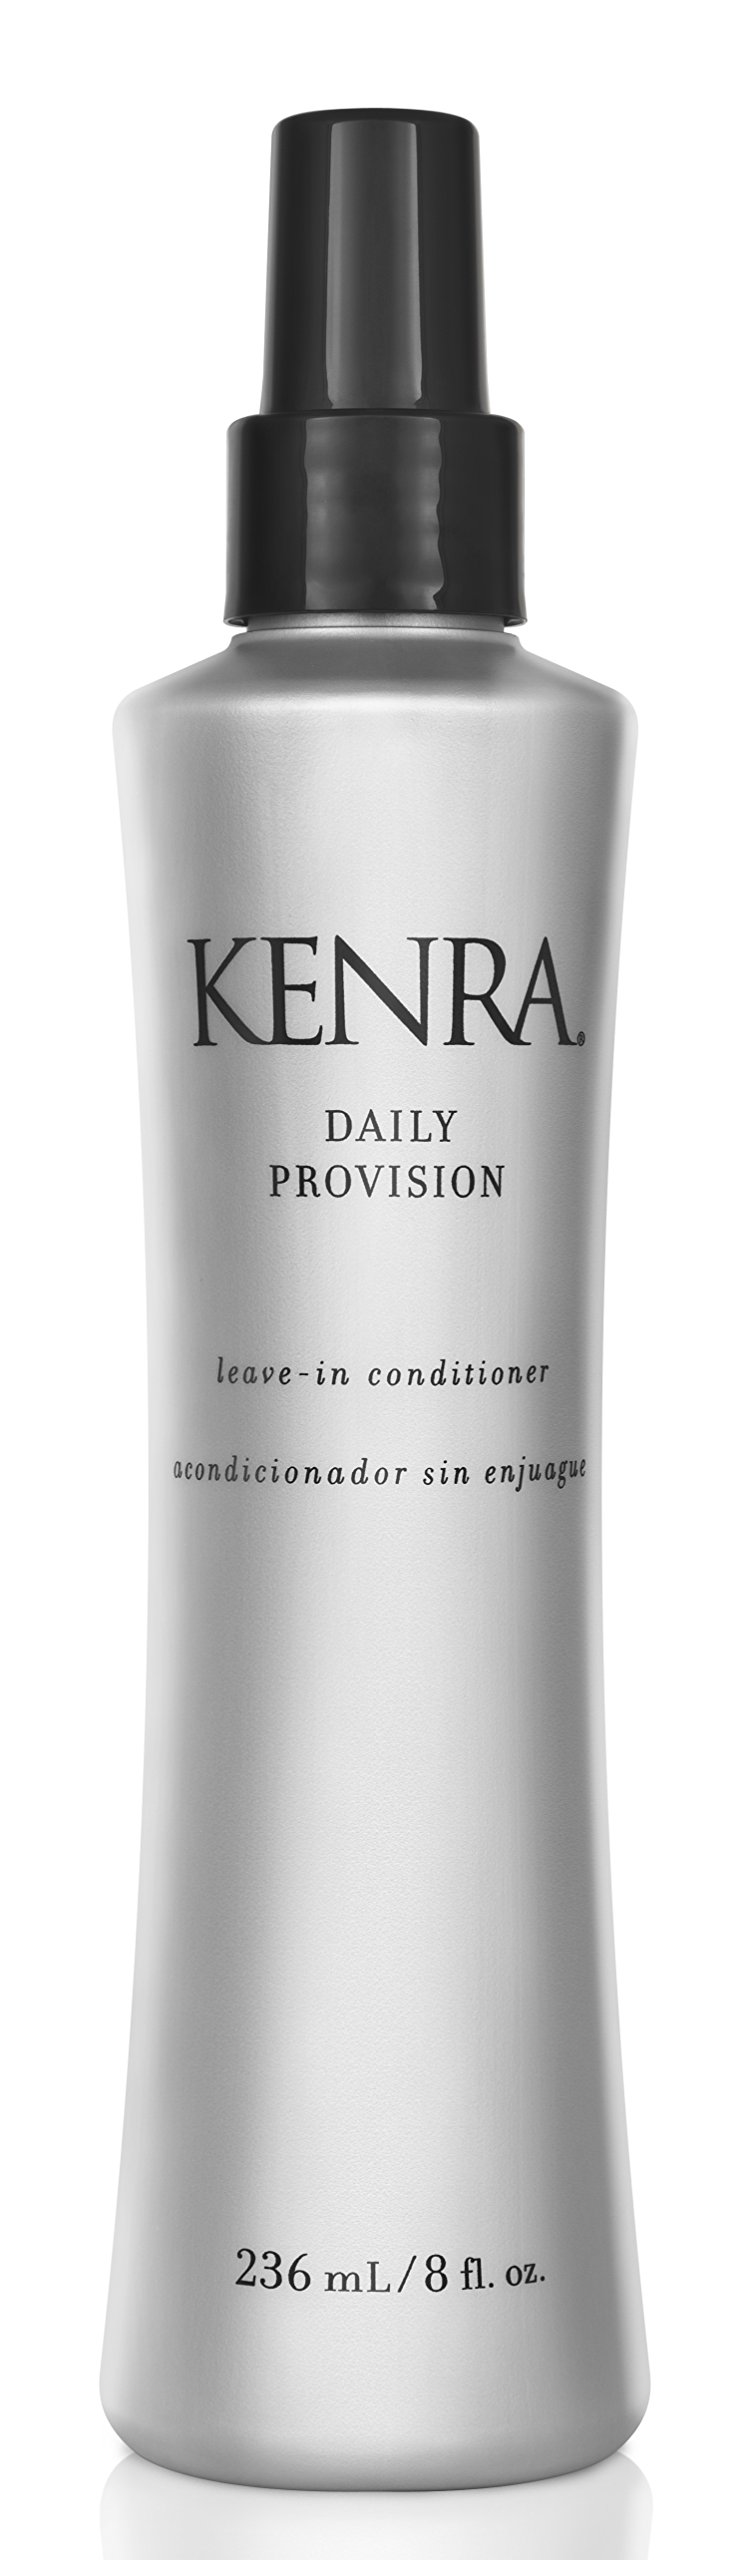 Kenra Daily Provision Leave-In Conditioner, 8-Ounce